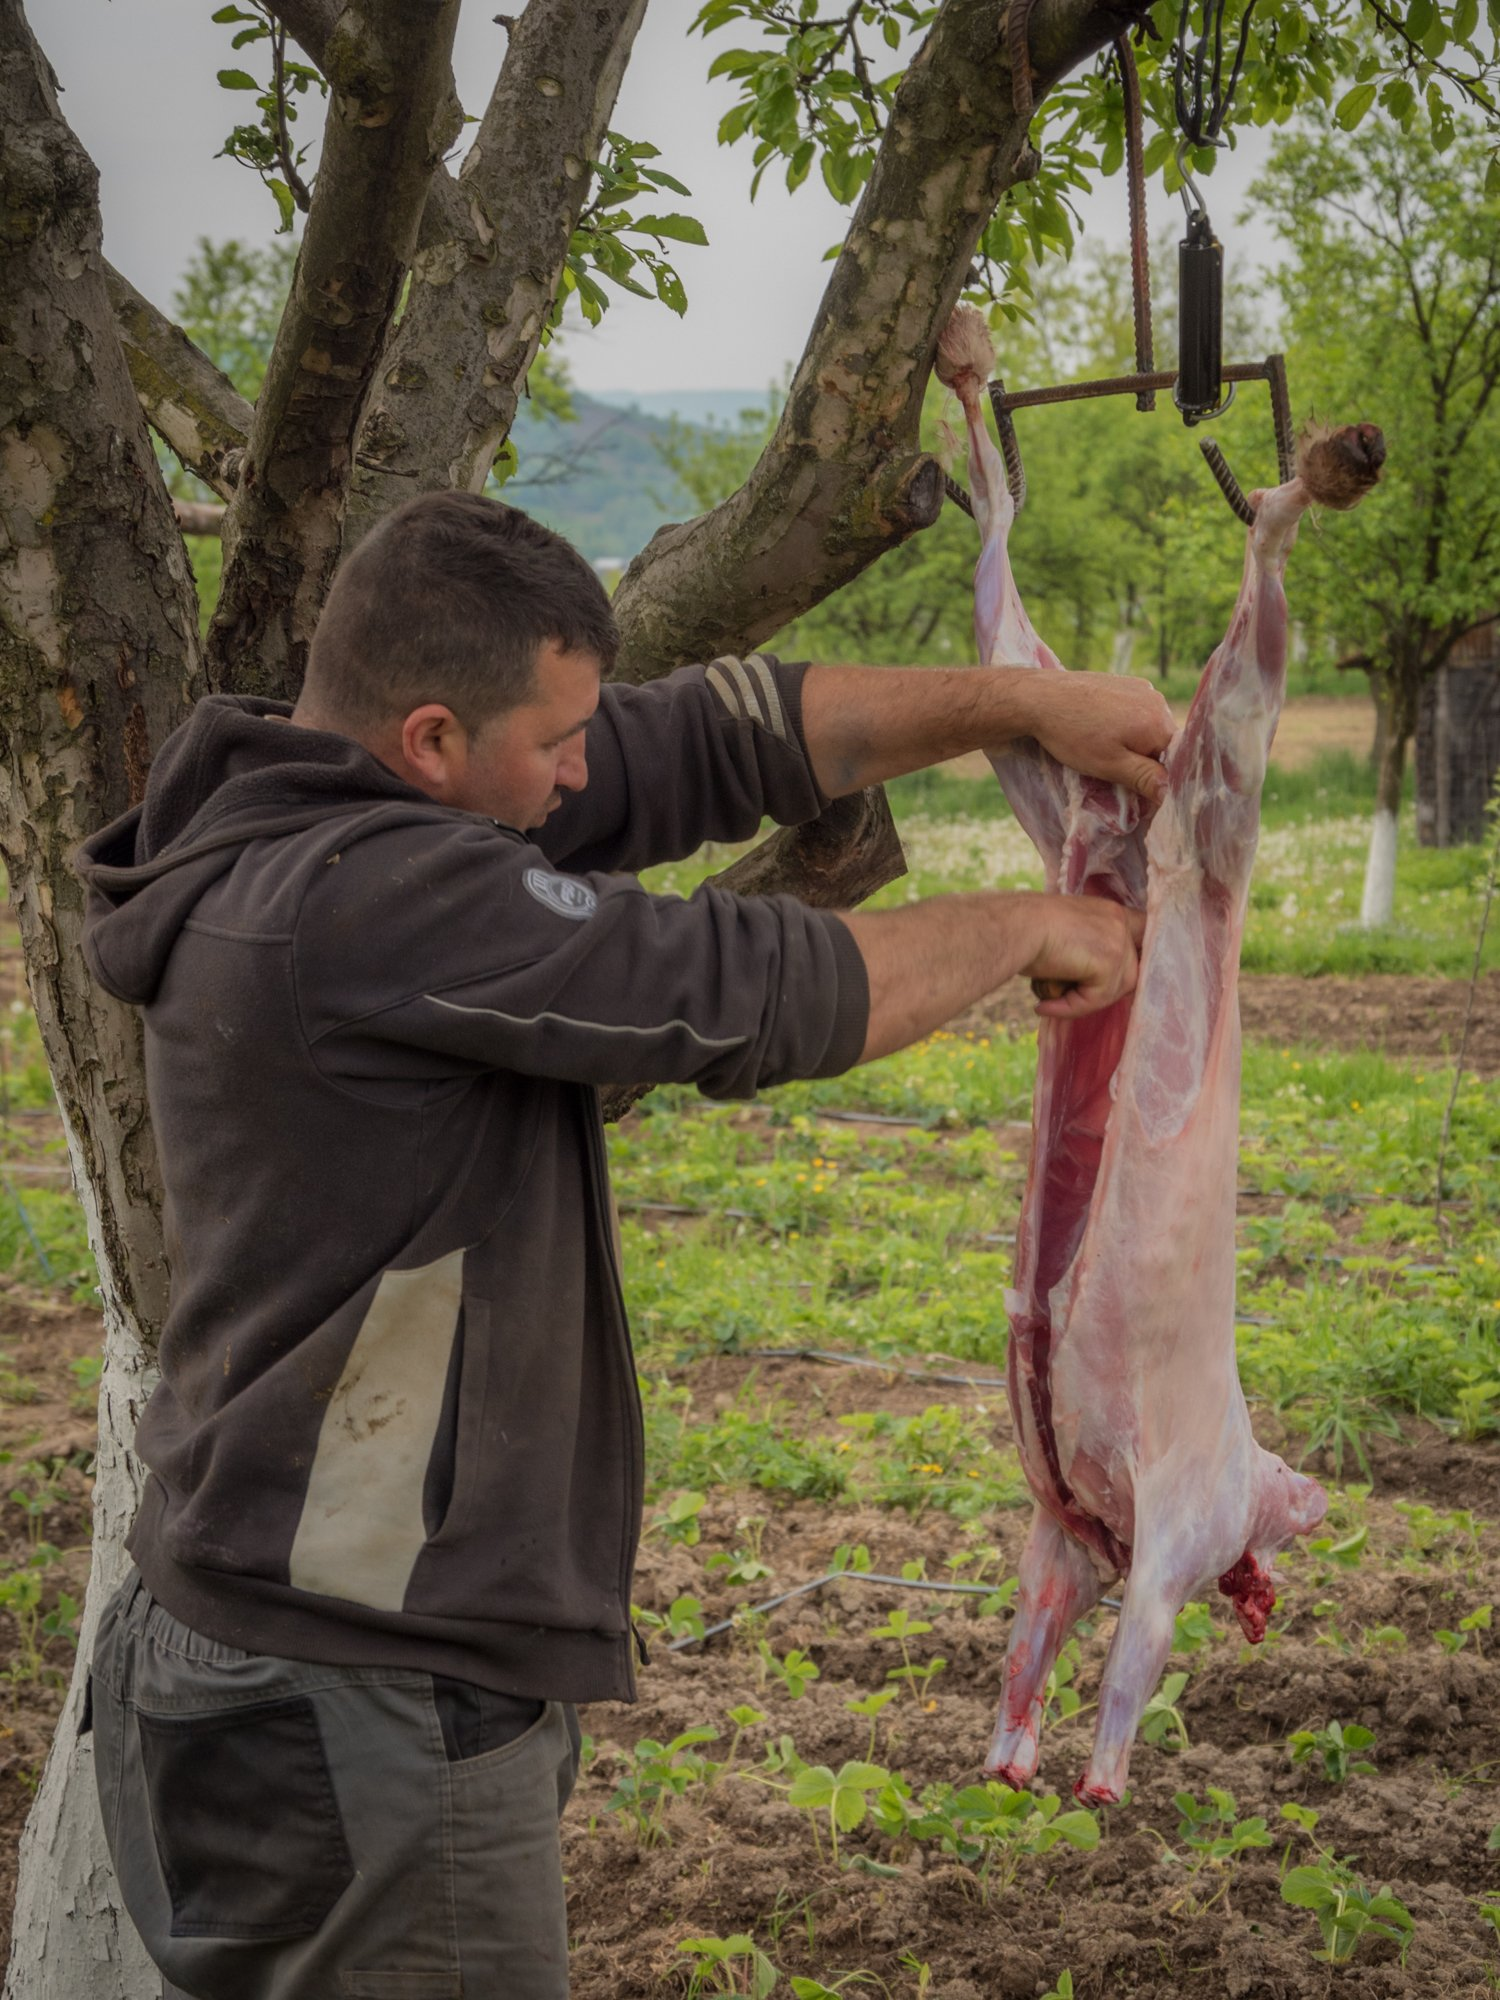 Slaughtering the lamb for Easter